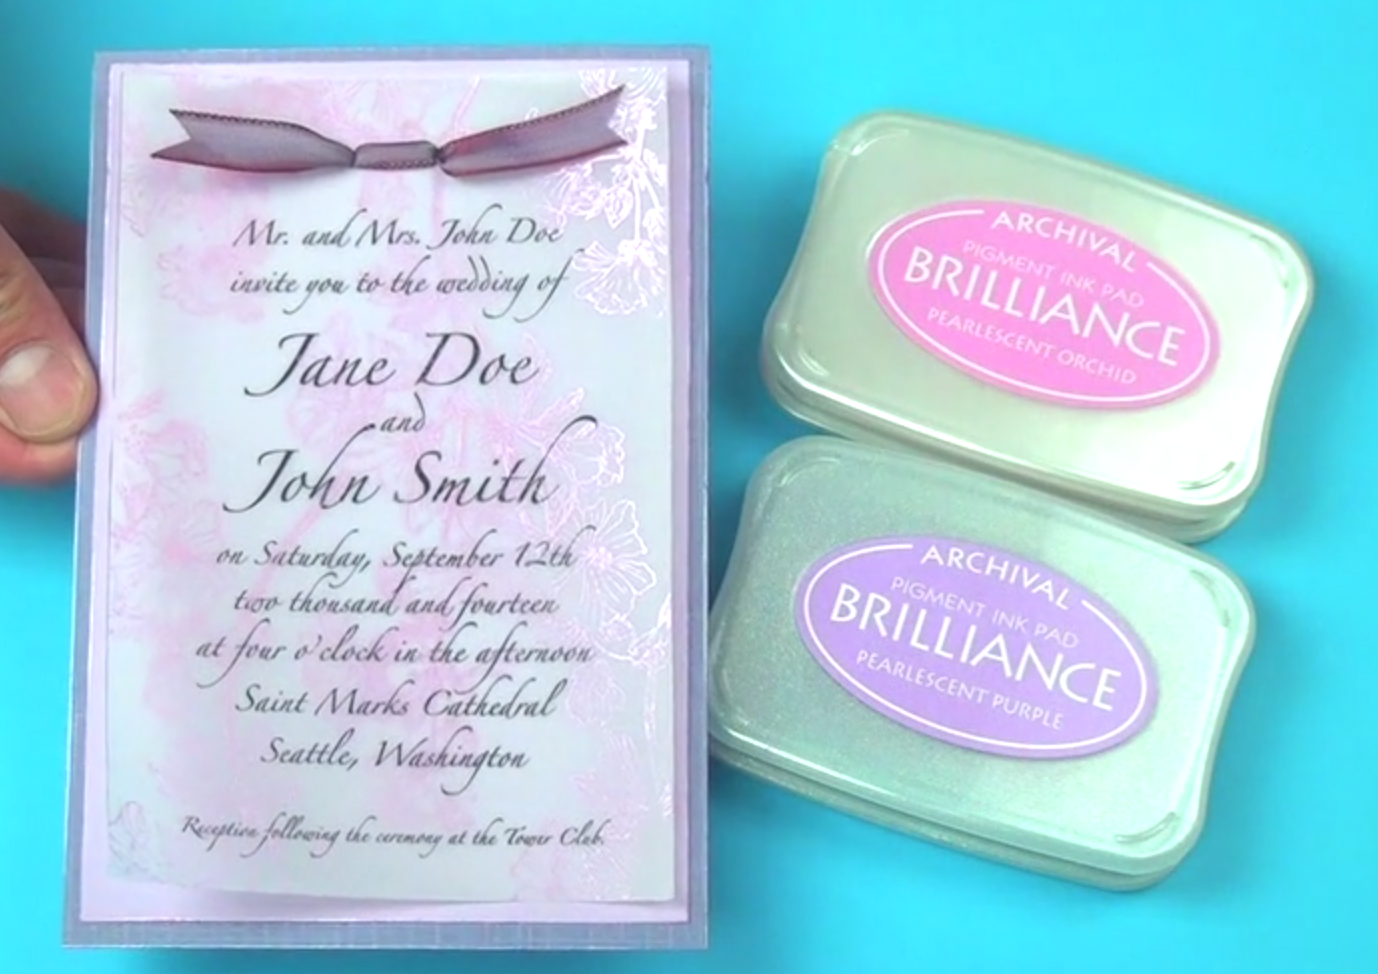 A pink and purple wedding invitation handmade using Brilliance pearlescent pigment inks on vellum.